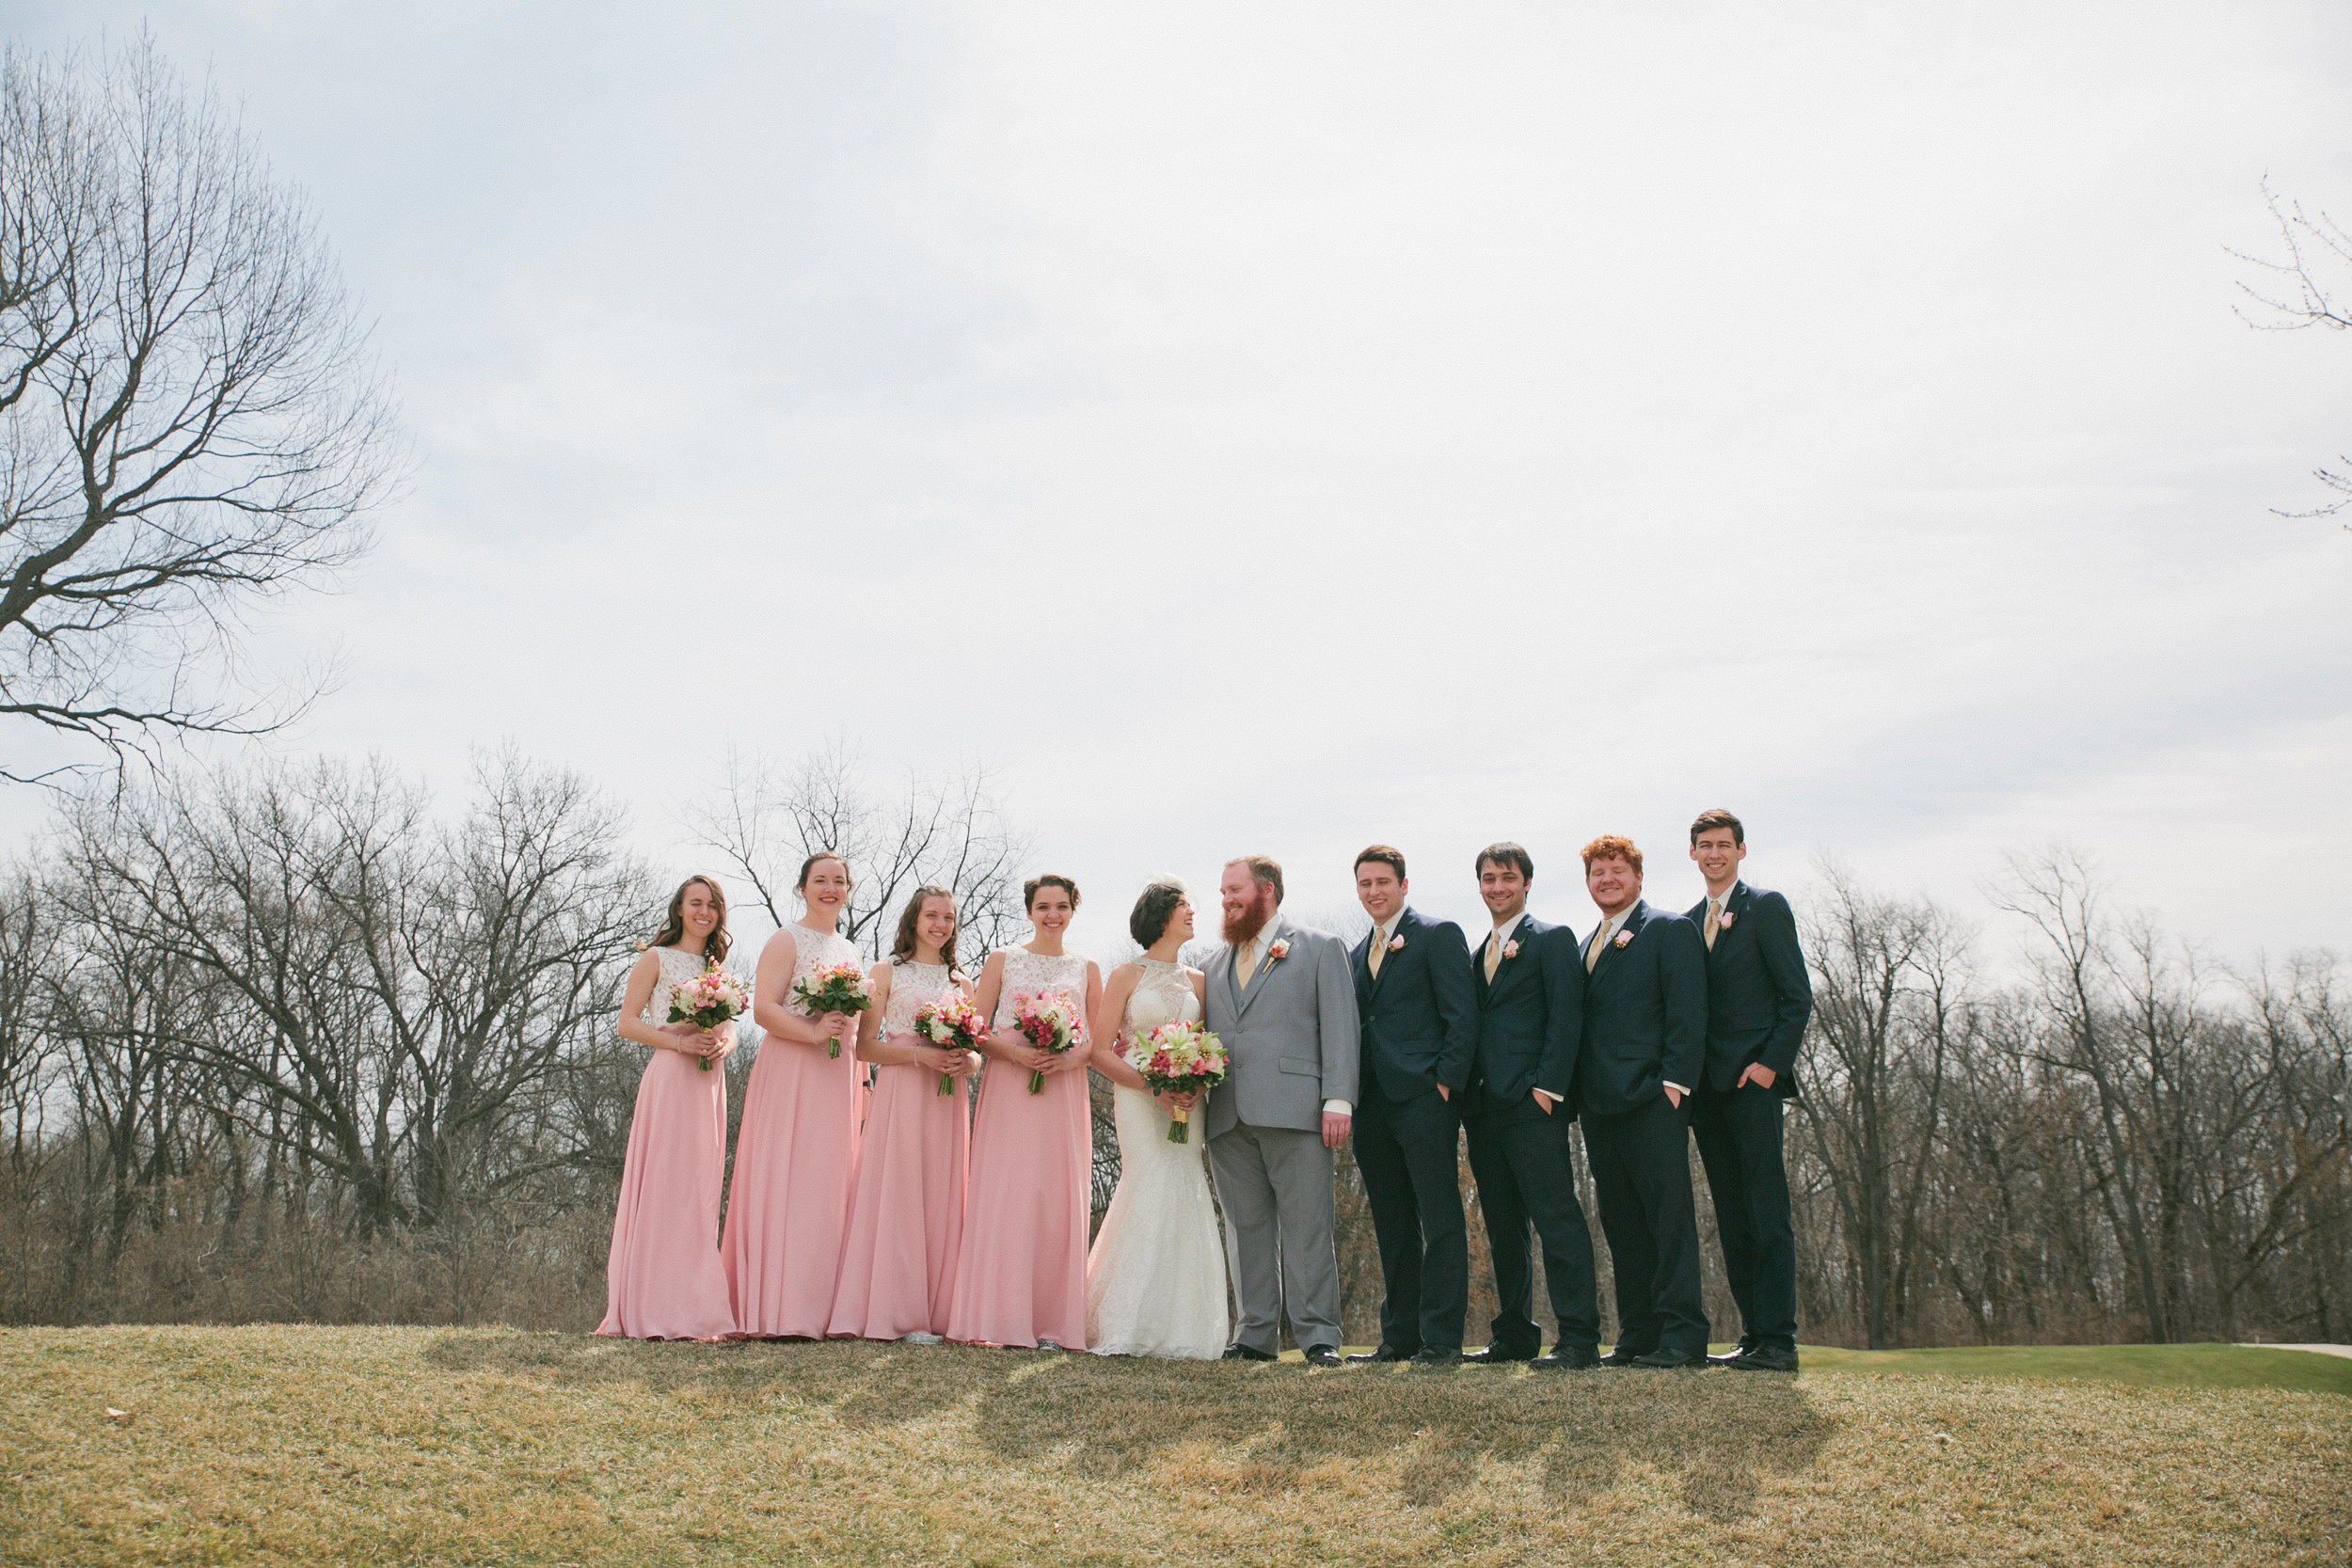 the official website and blog of Amelia Renee, a wedding photographer based in Des Moines